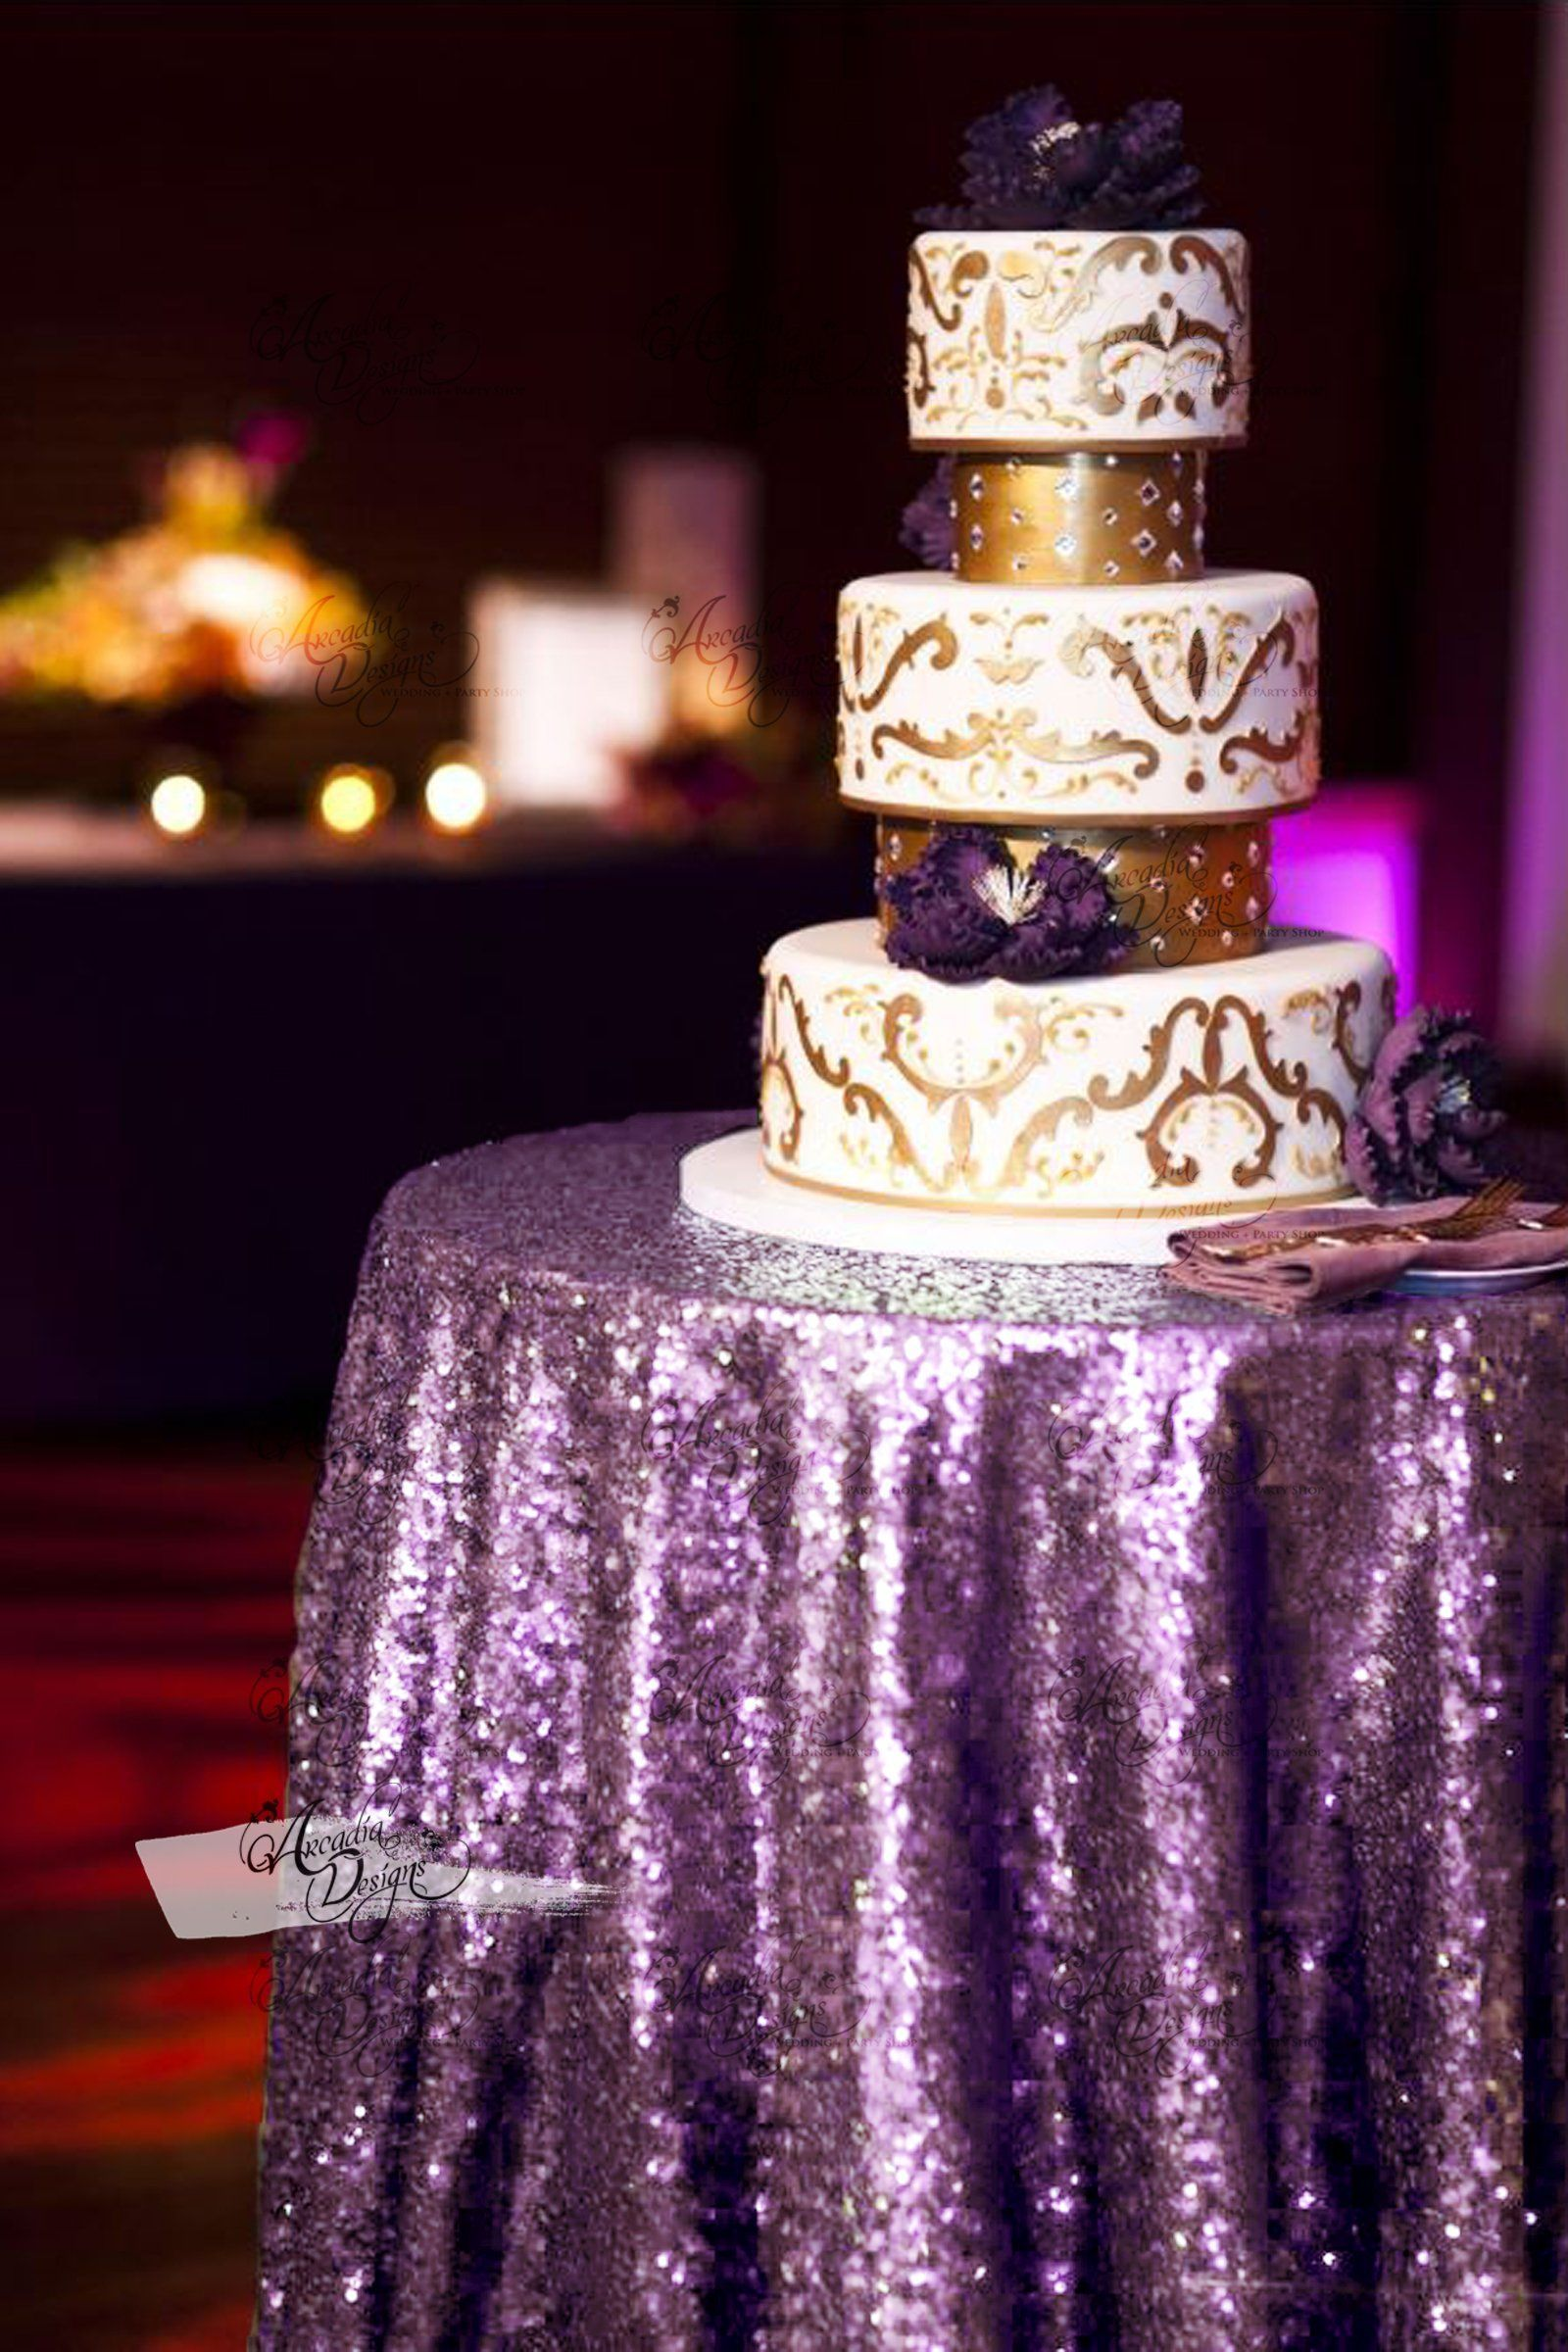 Red And Purple Wedding Ideas To Consider With Images Purple Wedding Cake Table Purple And Gold Wedding Wedding Cake Table